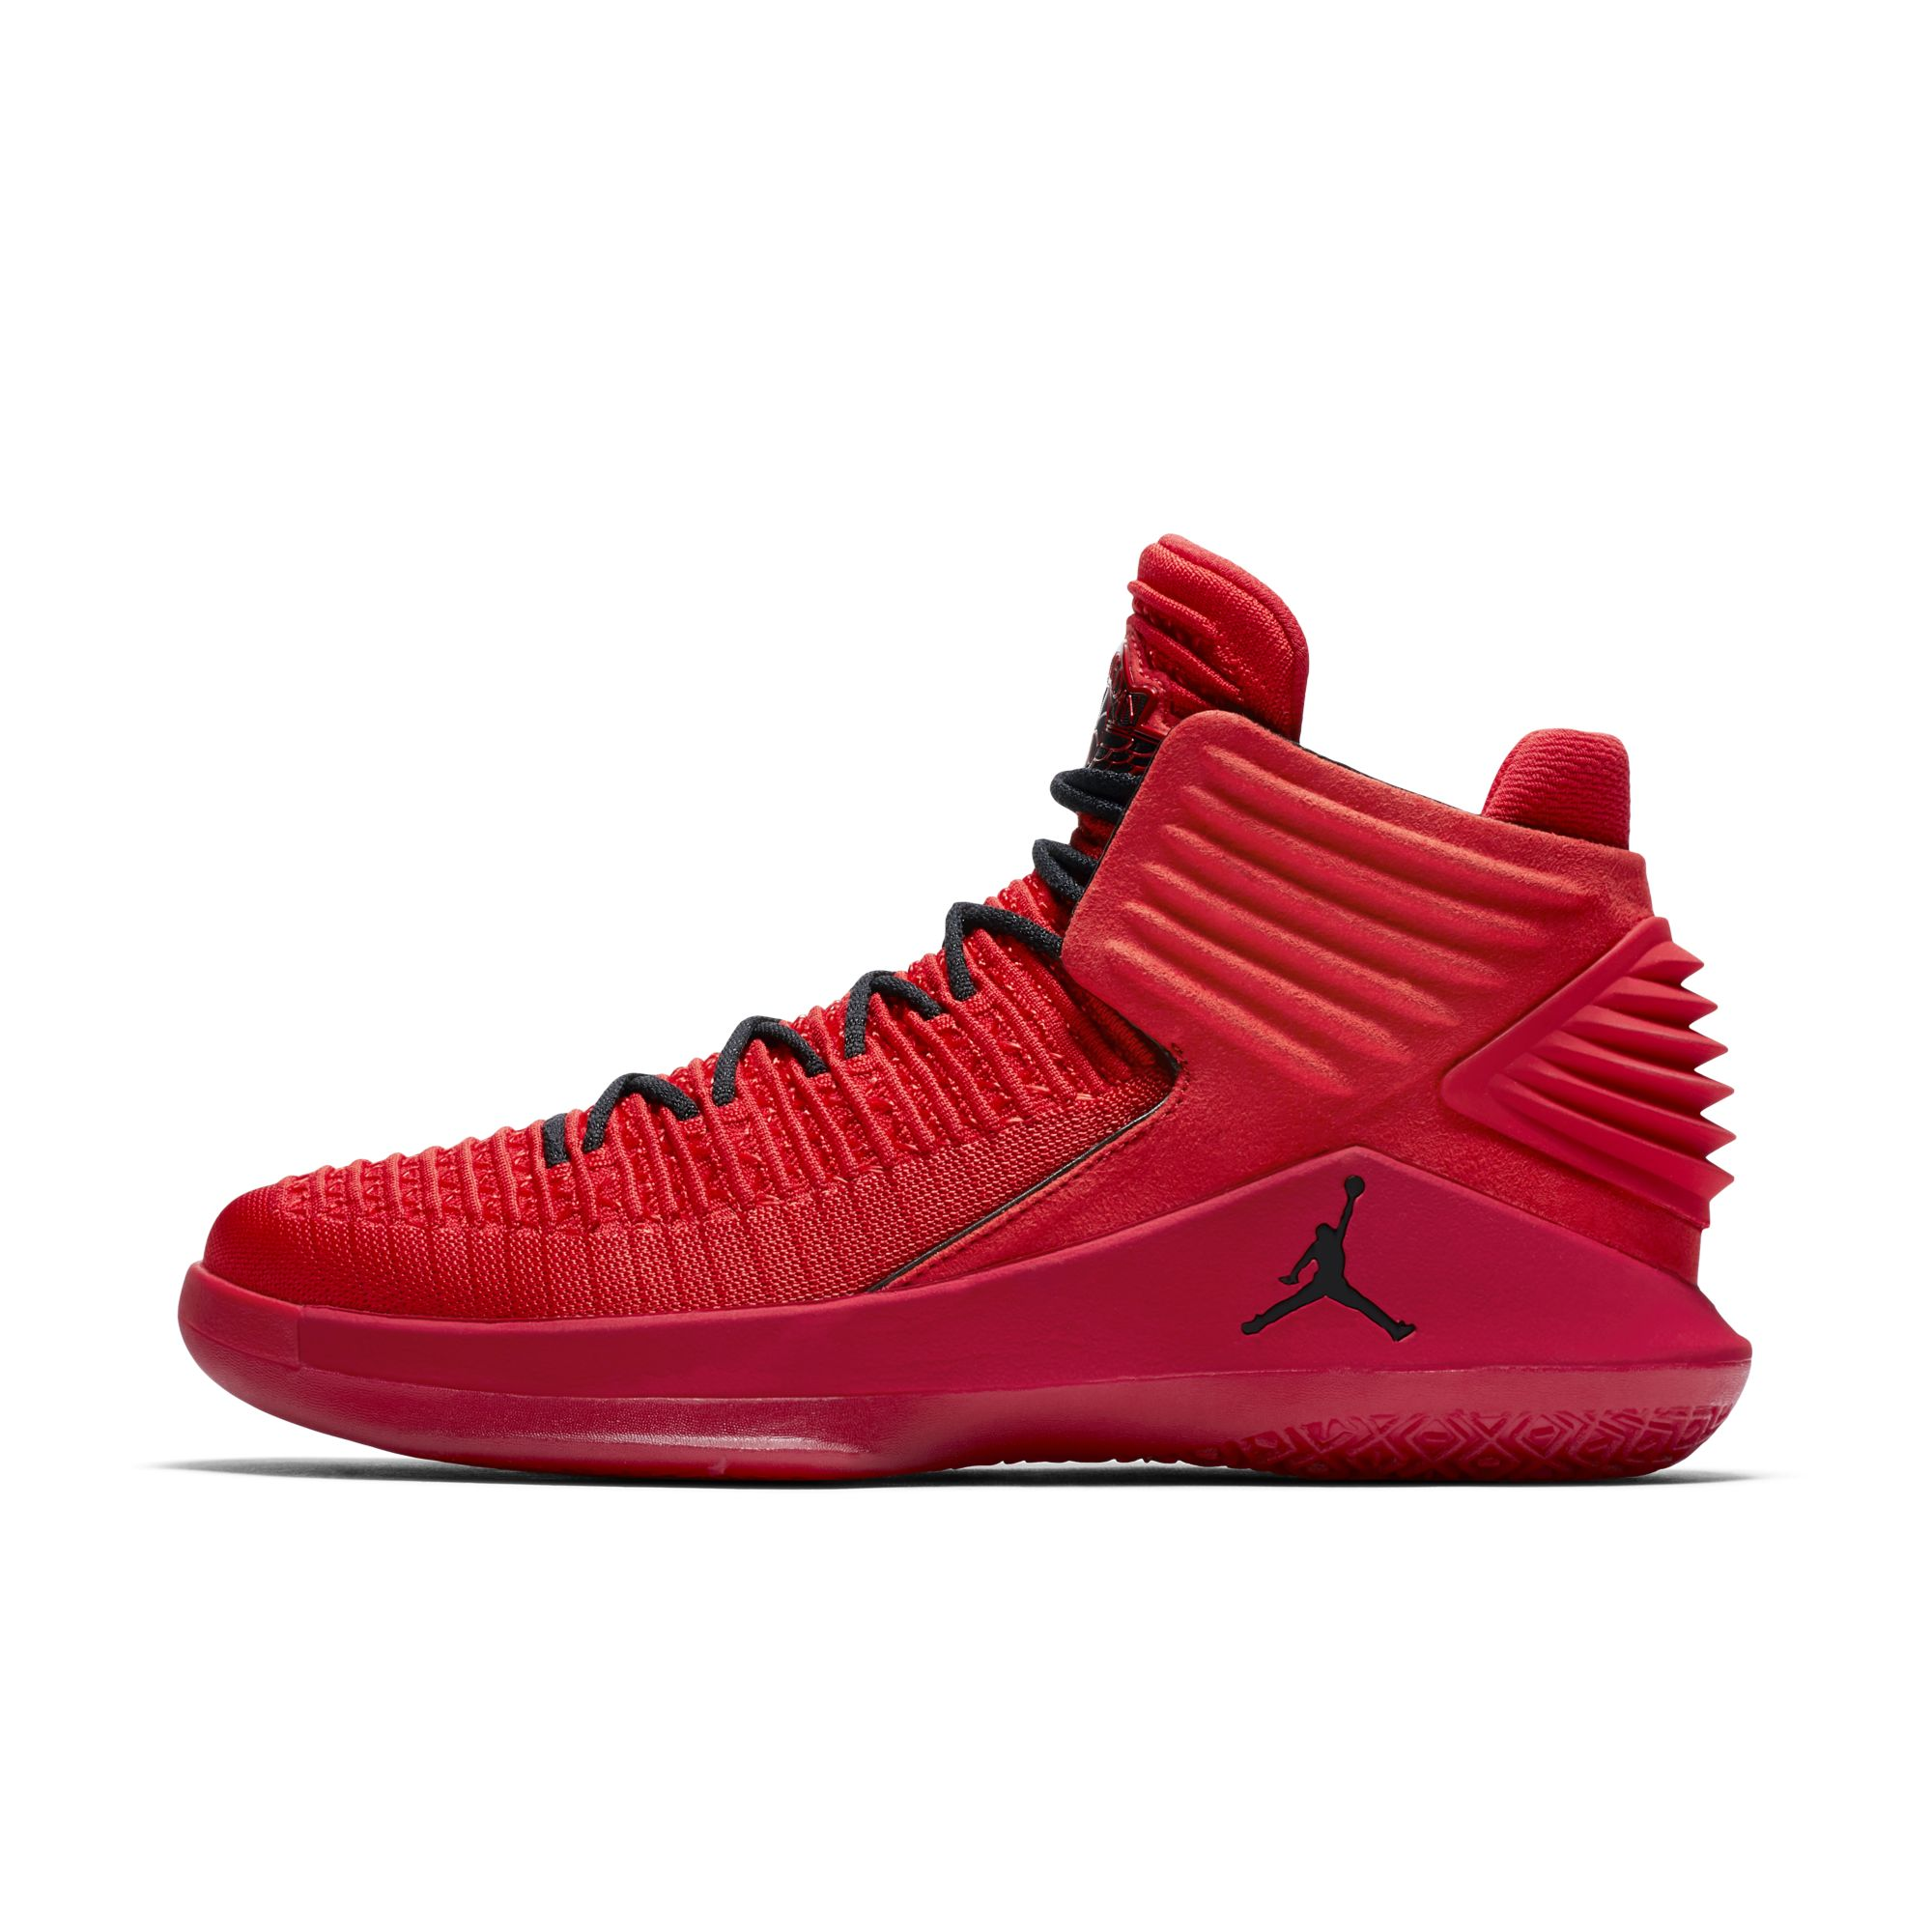 official photos 11be2 89cac ... 1 5  air jordan 32 rosso corsa 2